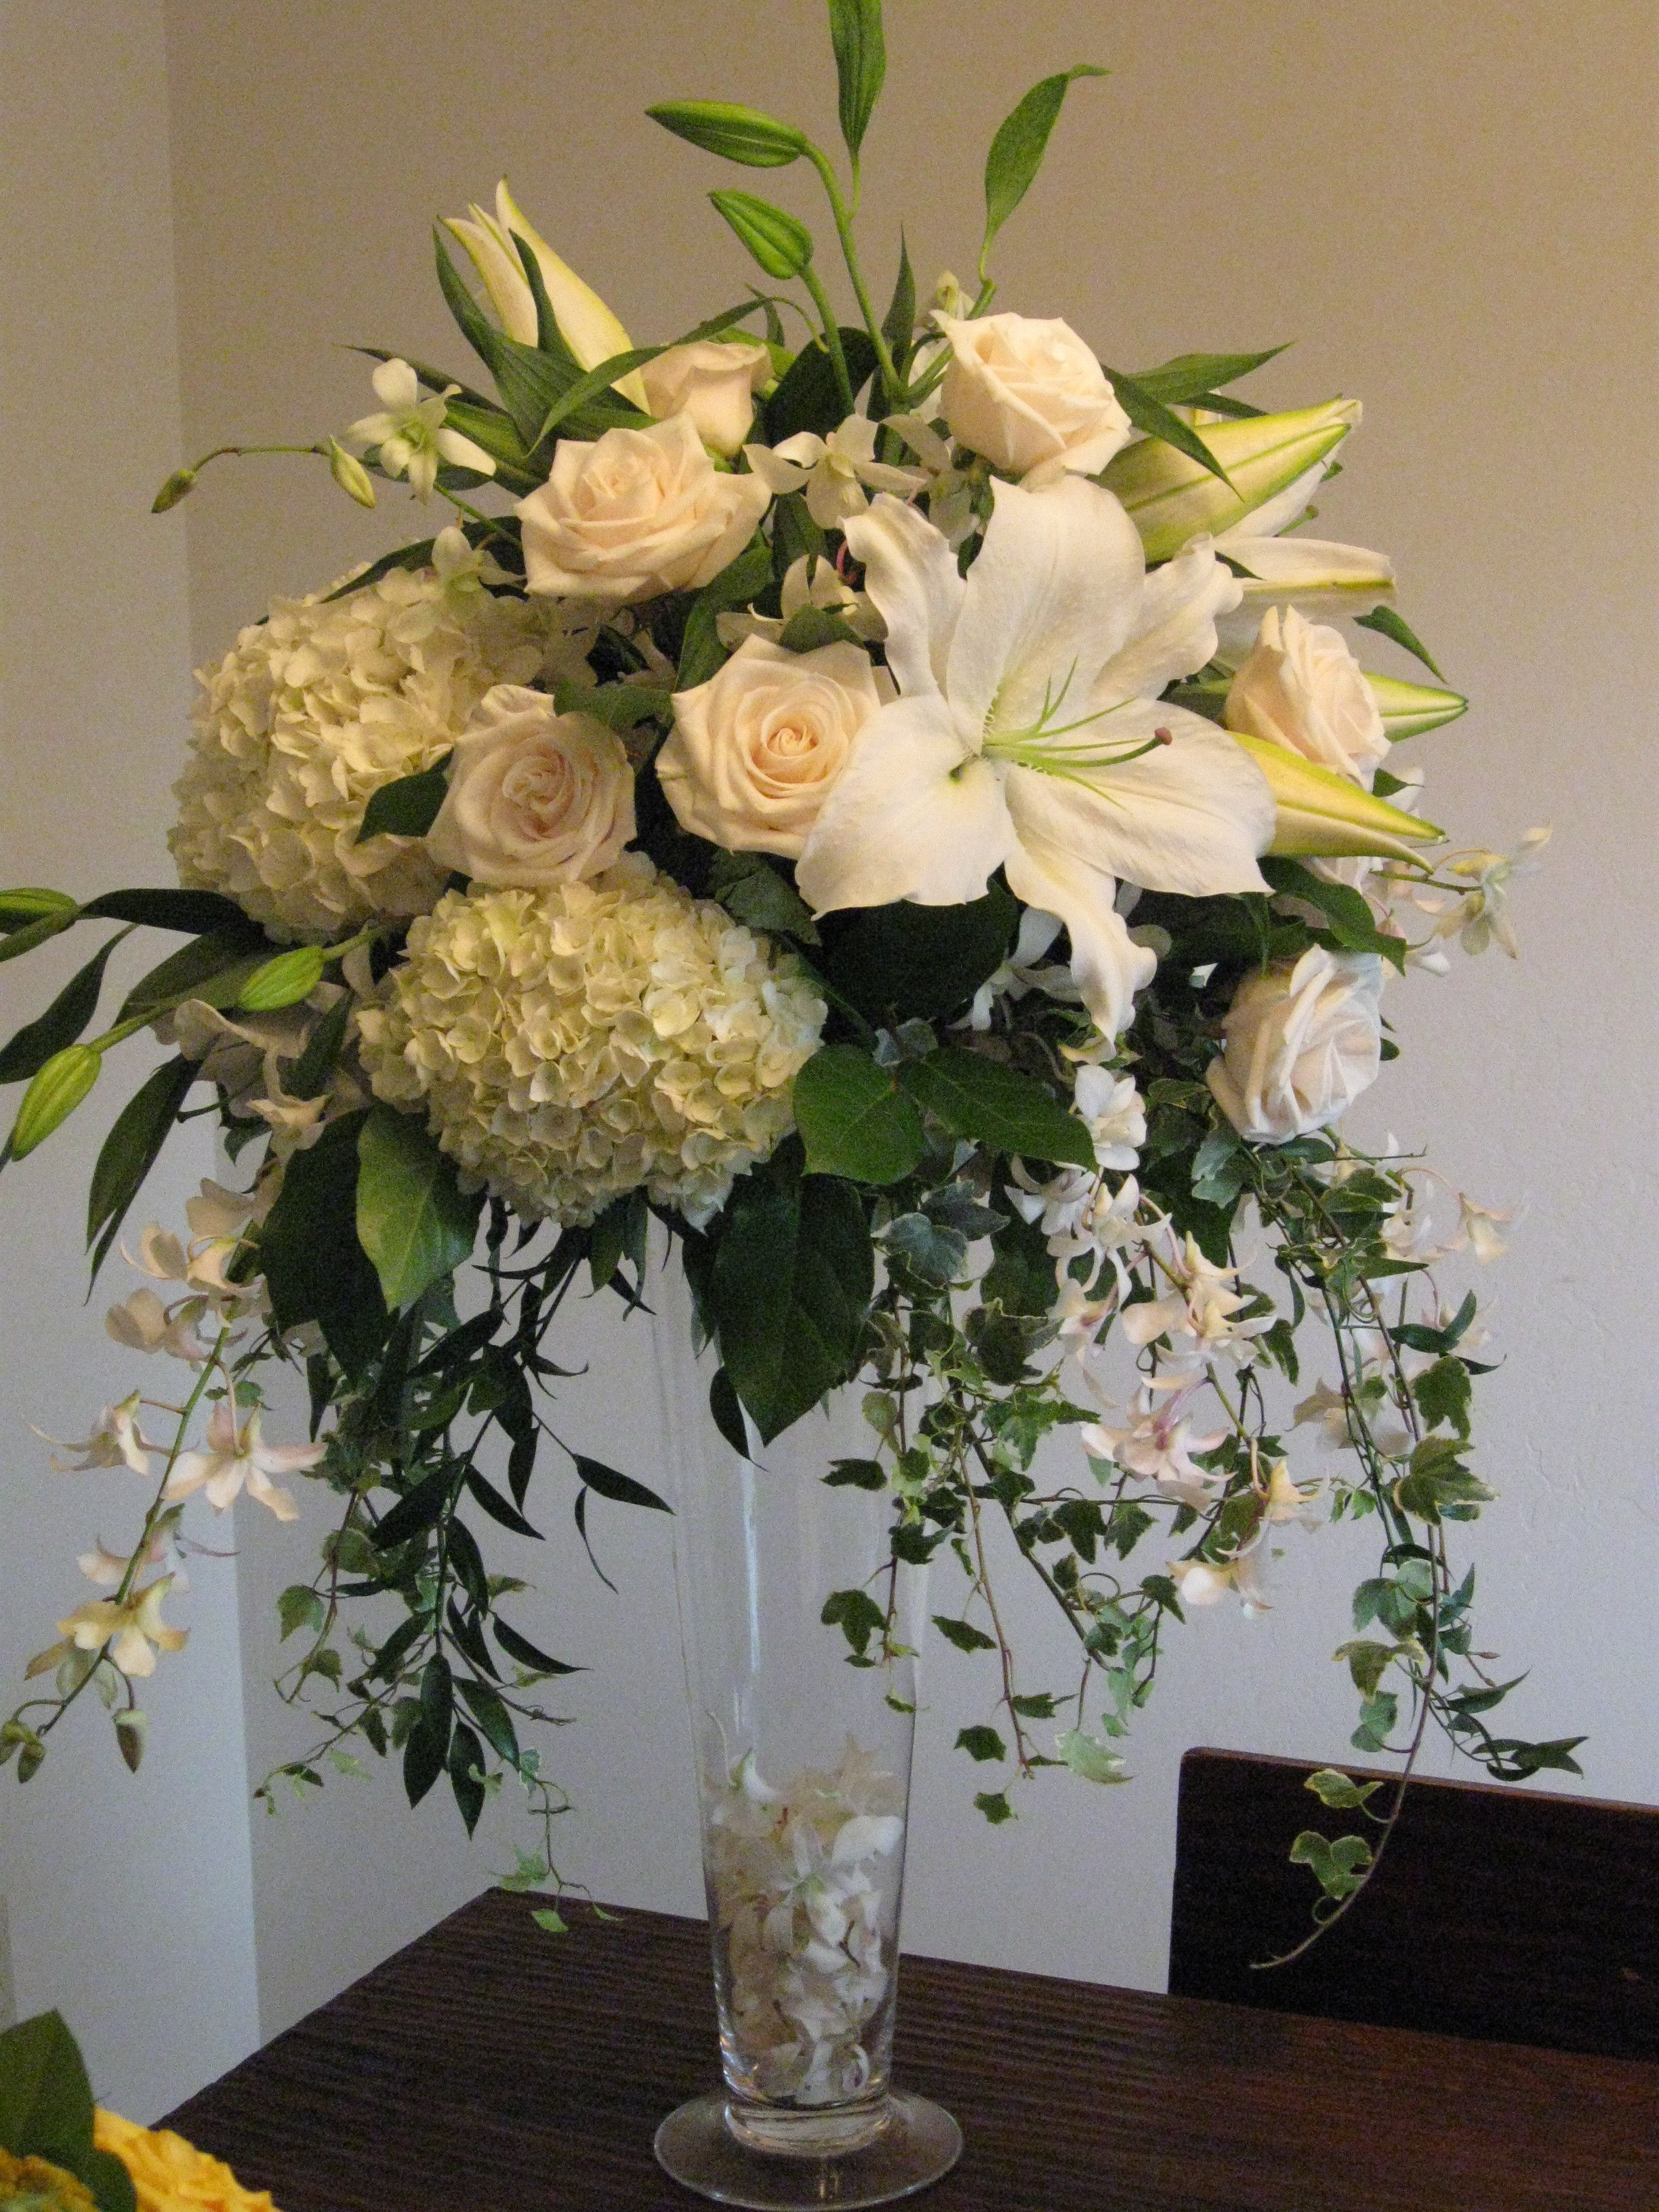 Vase with Hydrangeas Of Tall Vase with Sticks Elegant Centerpiece White Roses Hydrangea Intended for Tall Vase with Sticks Elegant Centerpiece White Roses Hydrangea orchids Tall Vendela the